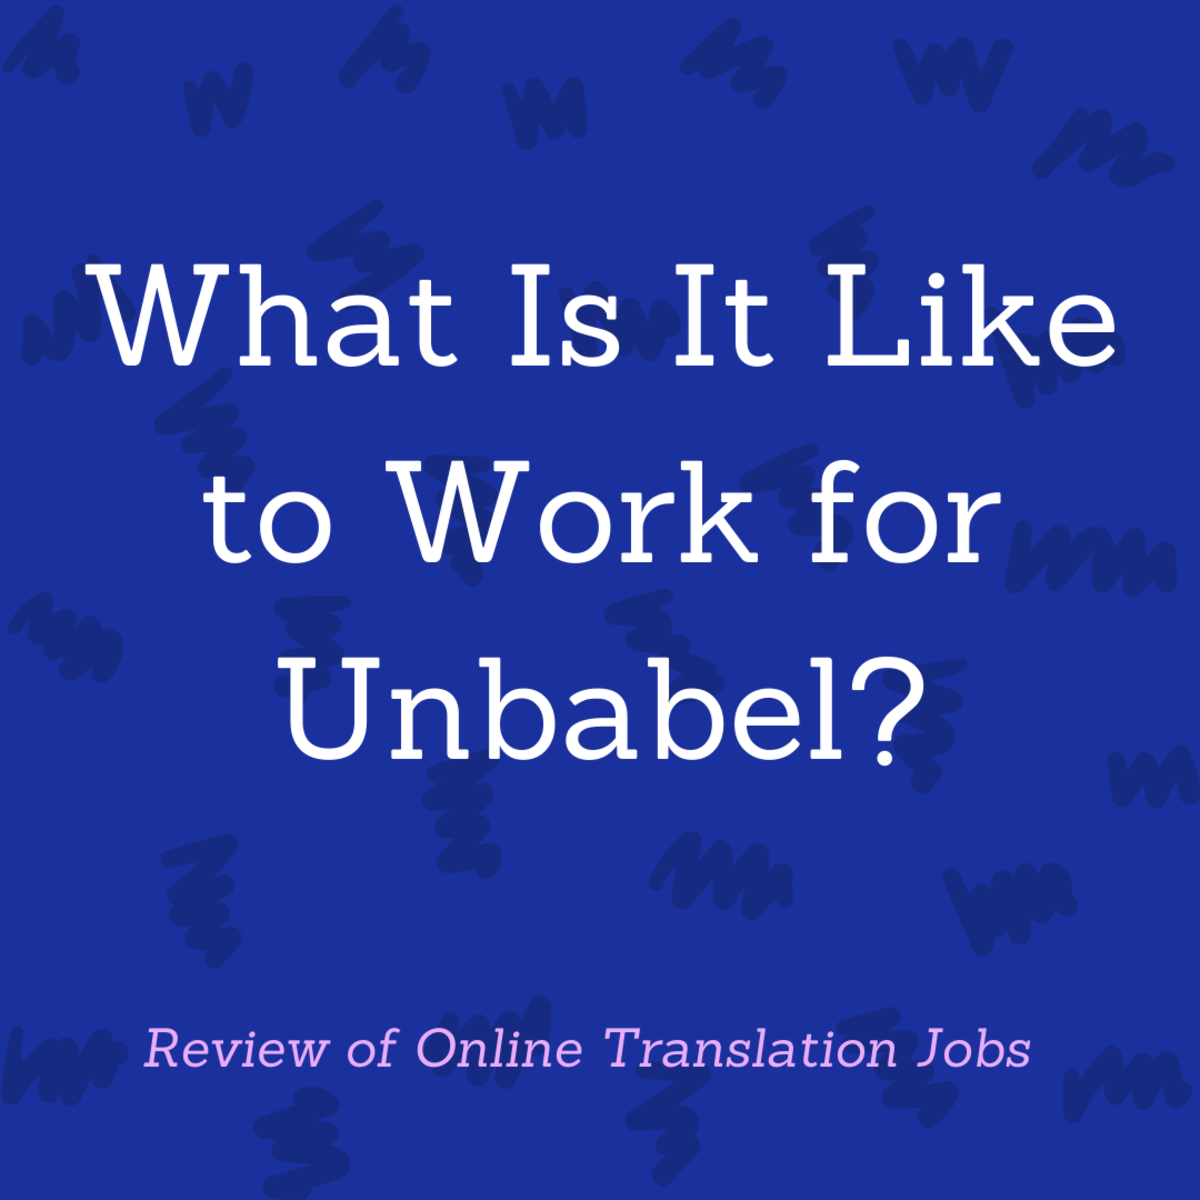 Read a review of working for Unbabel, including what the translation tasks are like and how much you can earn.